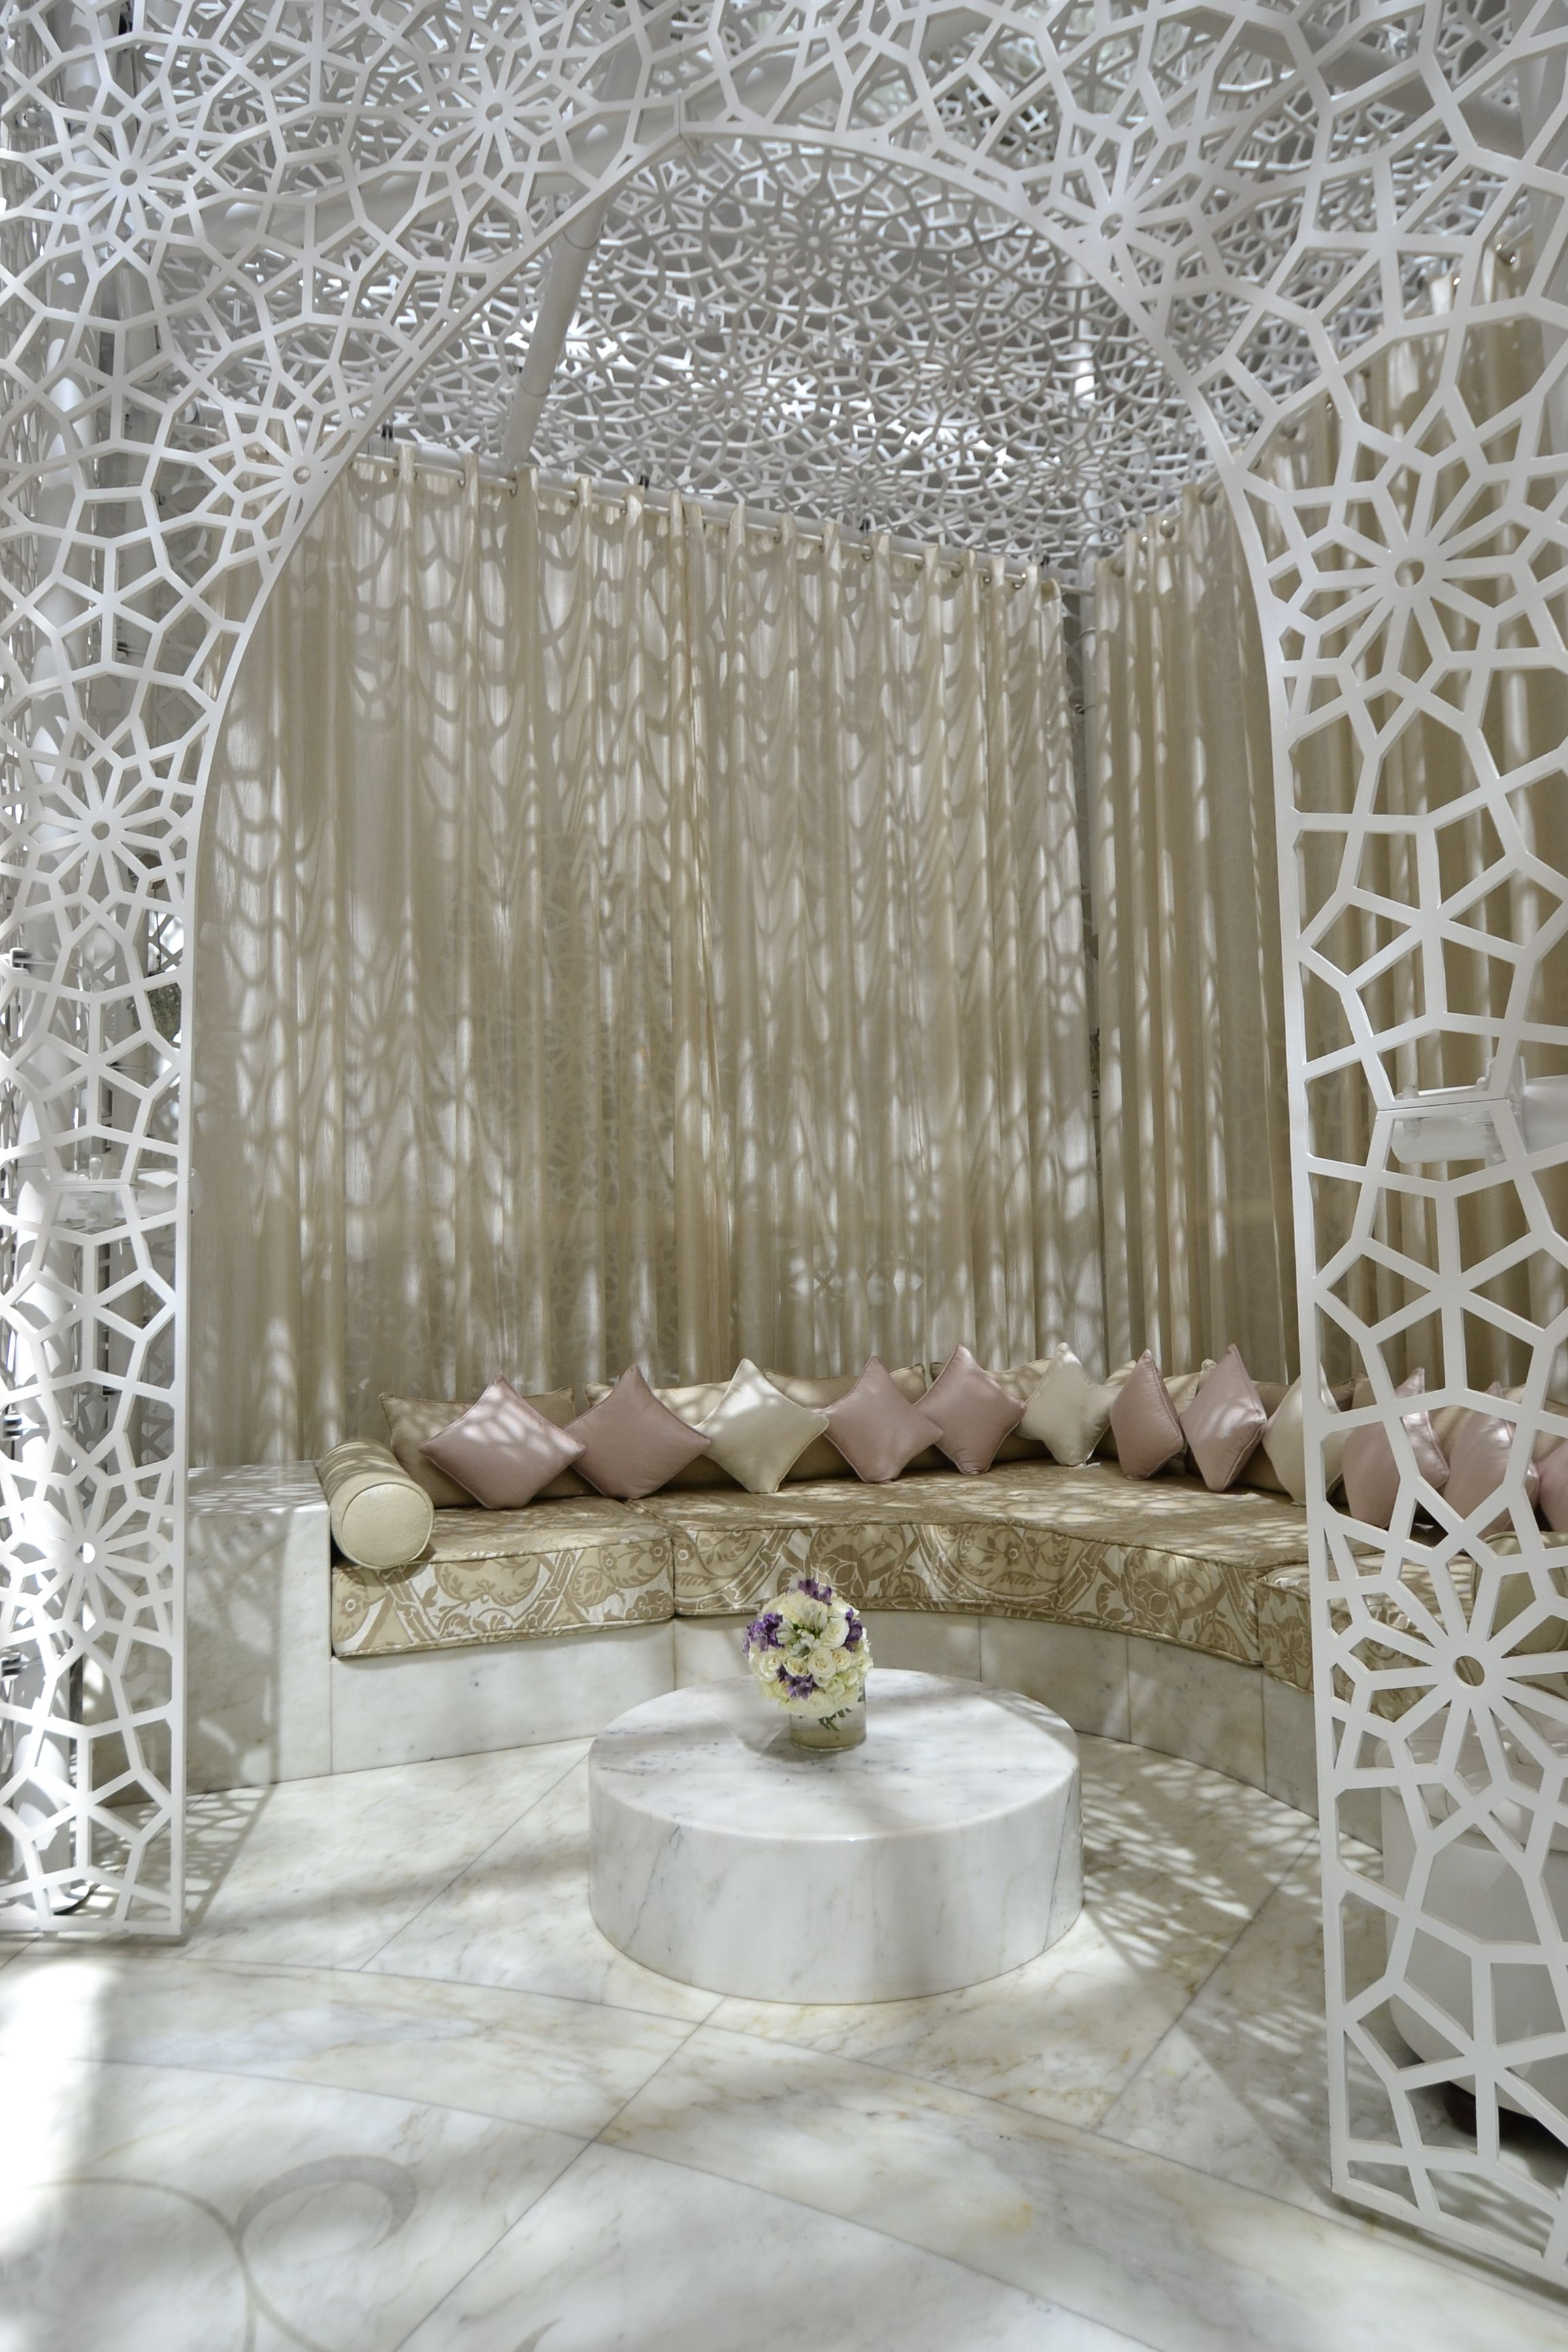 The Spa at Royal Mansour Marrakech, issue 7. design